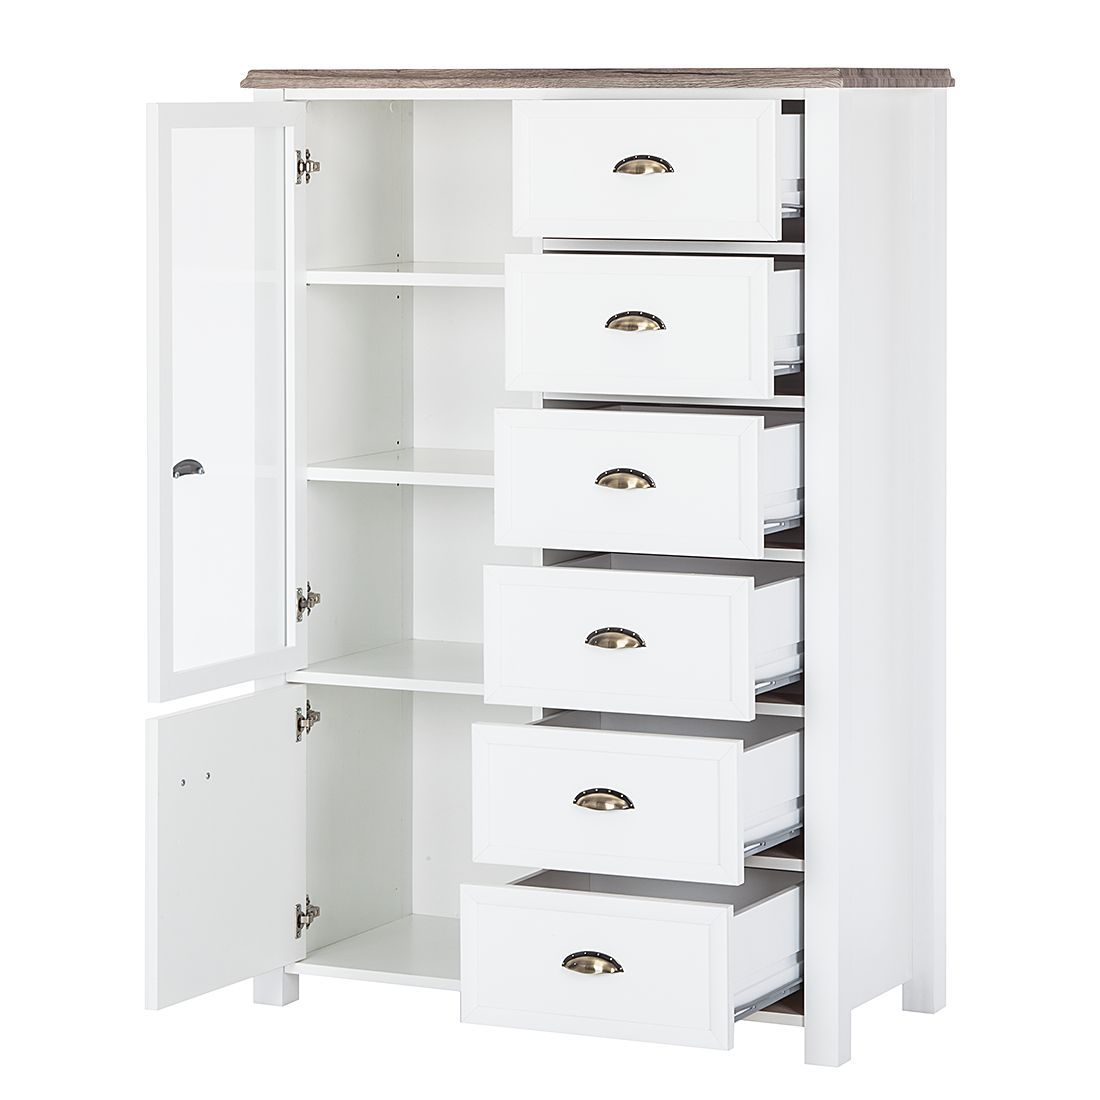 Hochkommode Hochkommode Chateau Products Cabinet Furniture Home Decor Und